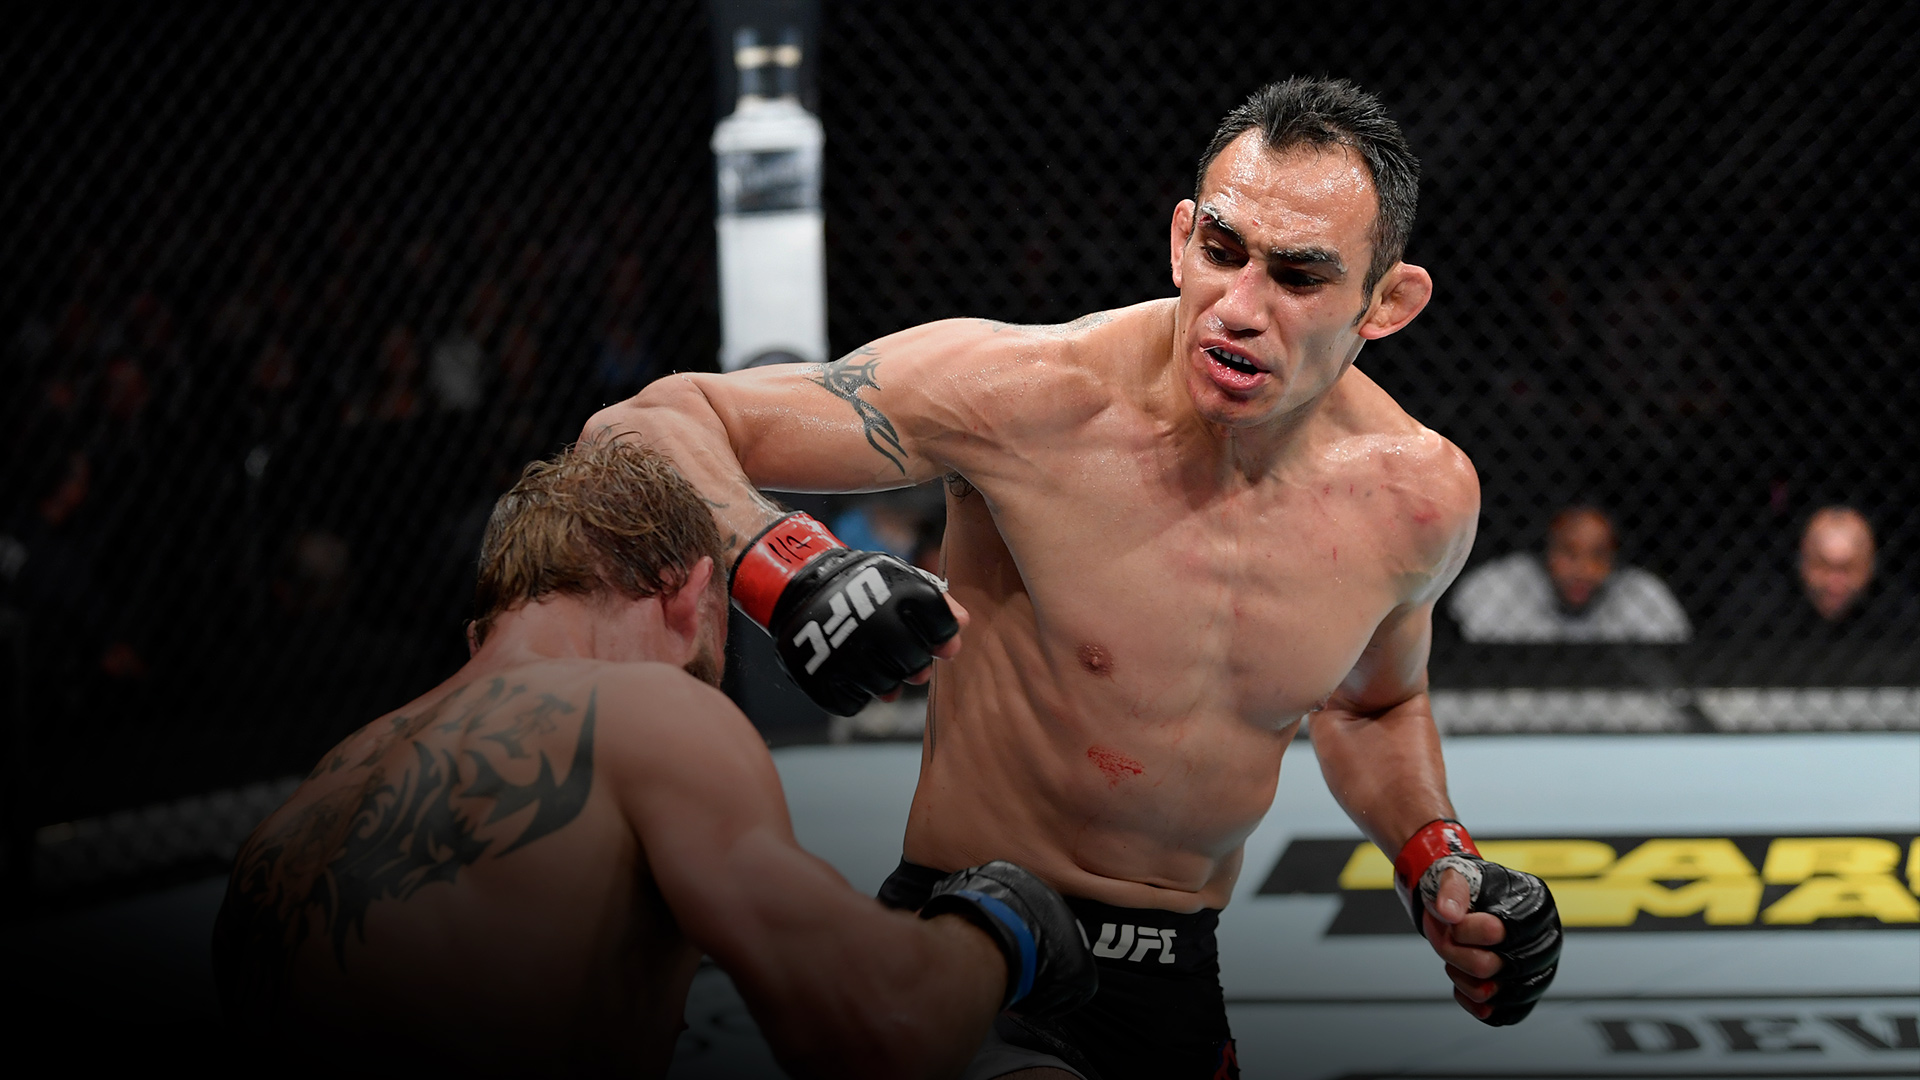 Tony Ferguson punches Donald Cerrone in their lightweight bout during the UFC 238 event at the United Center on June 8, 2019 in Chicago, Illinois. (Photo by Jeff Bottari/Zuffa LLC)